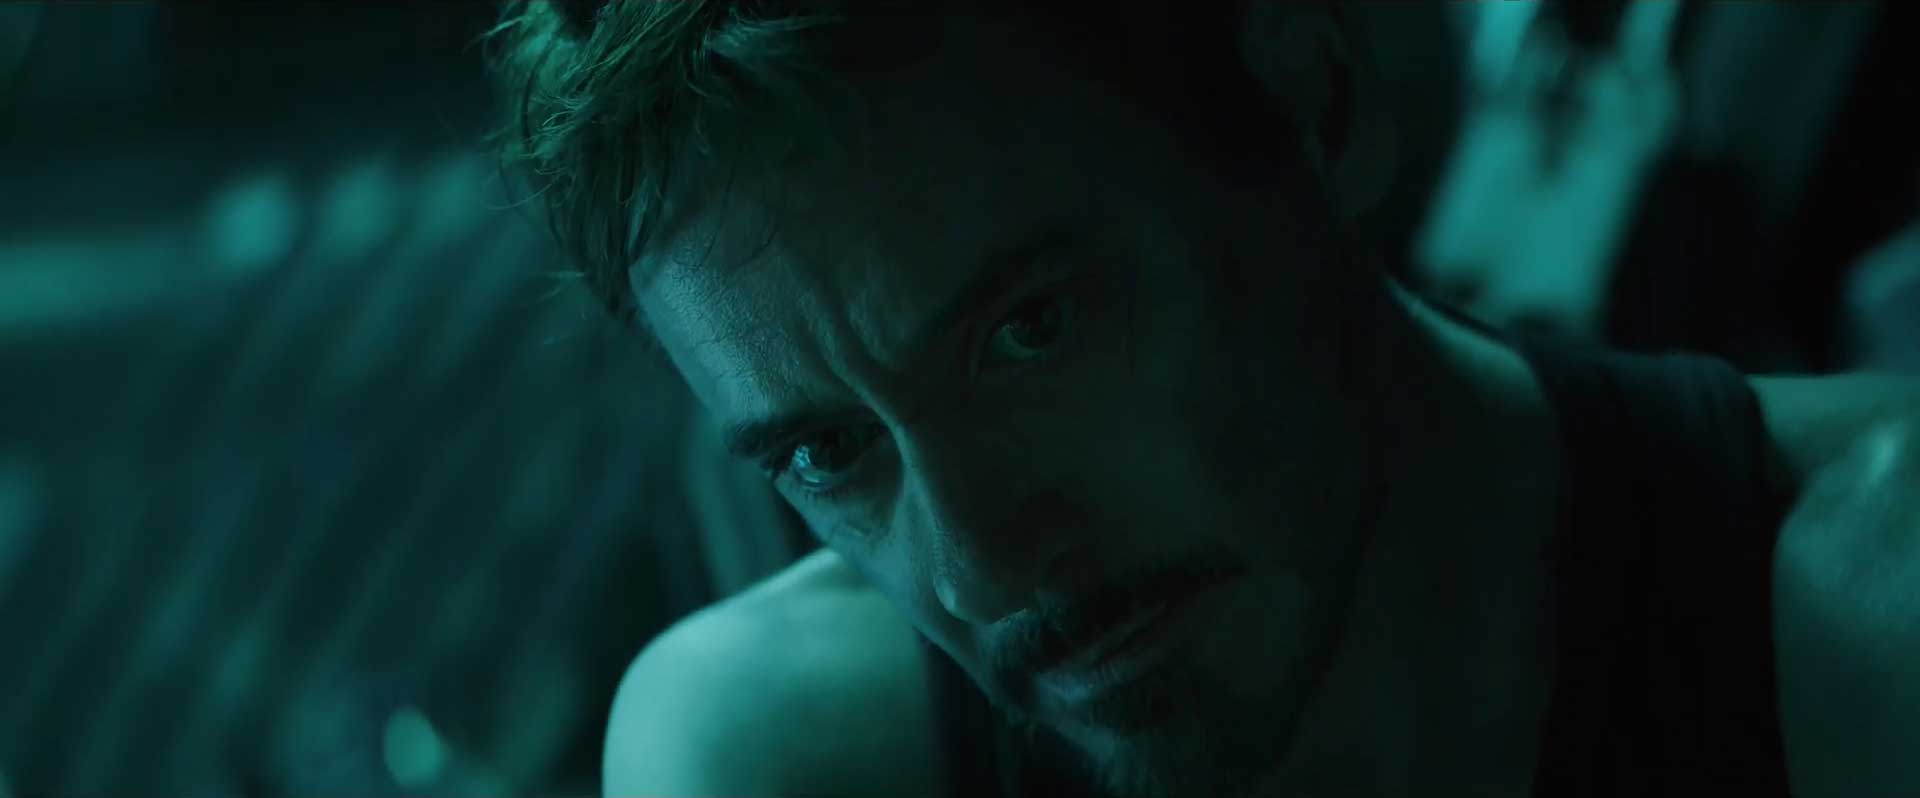 Avengers Endgame Trailer 2 Breakdown - Tony Stark One Last Surprise Rescue Space